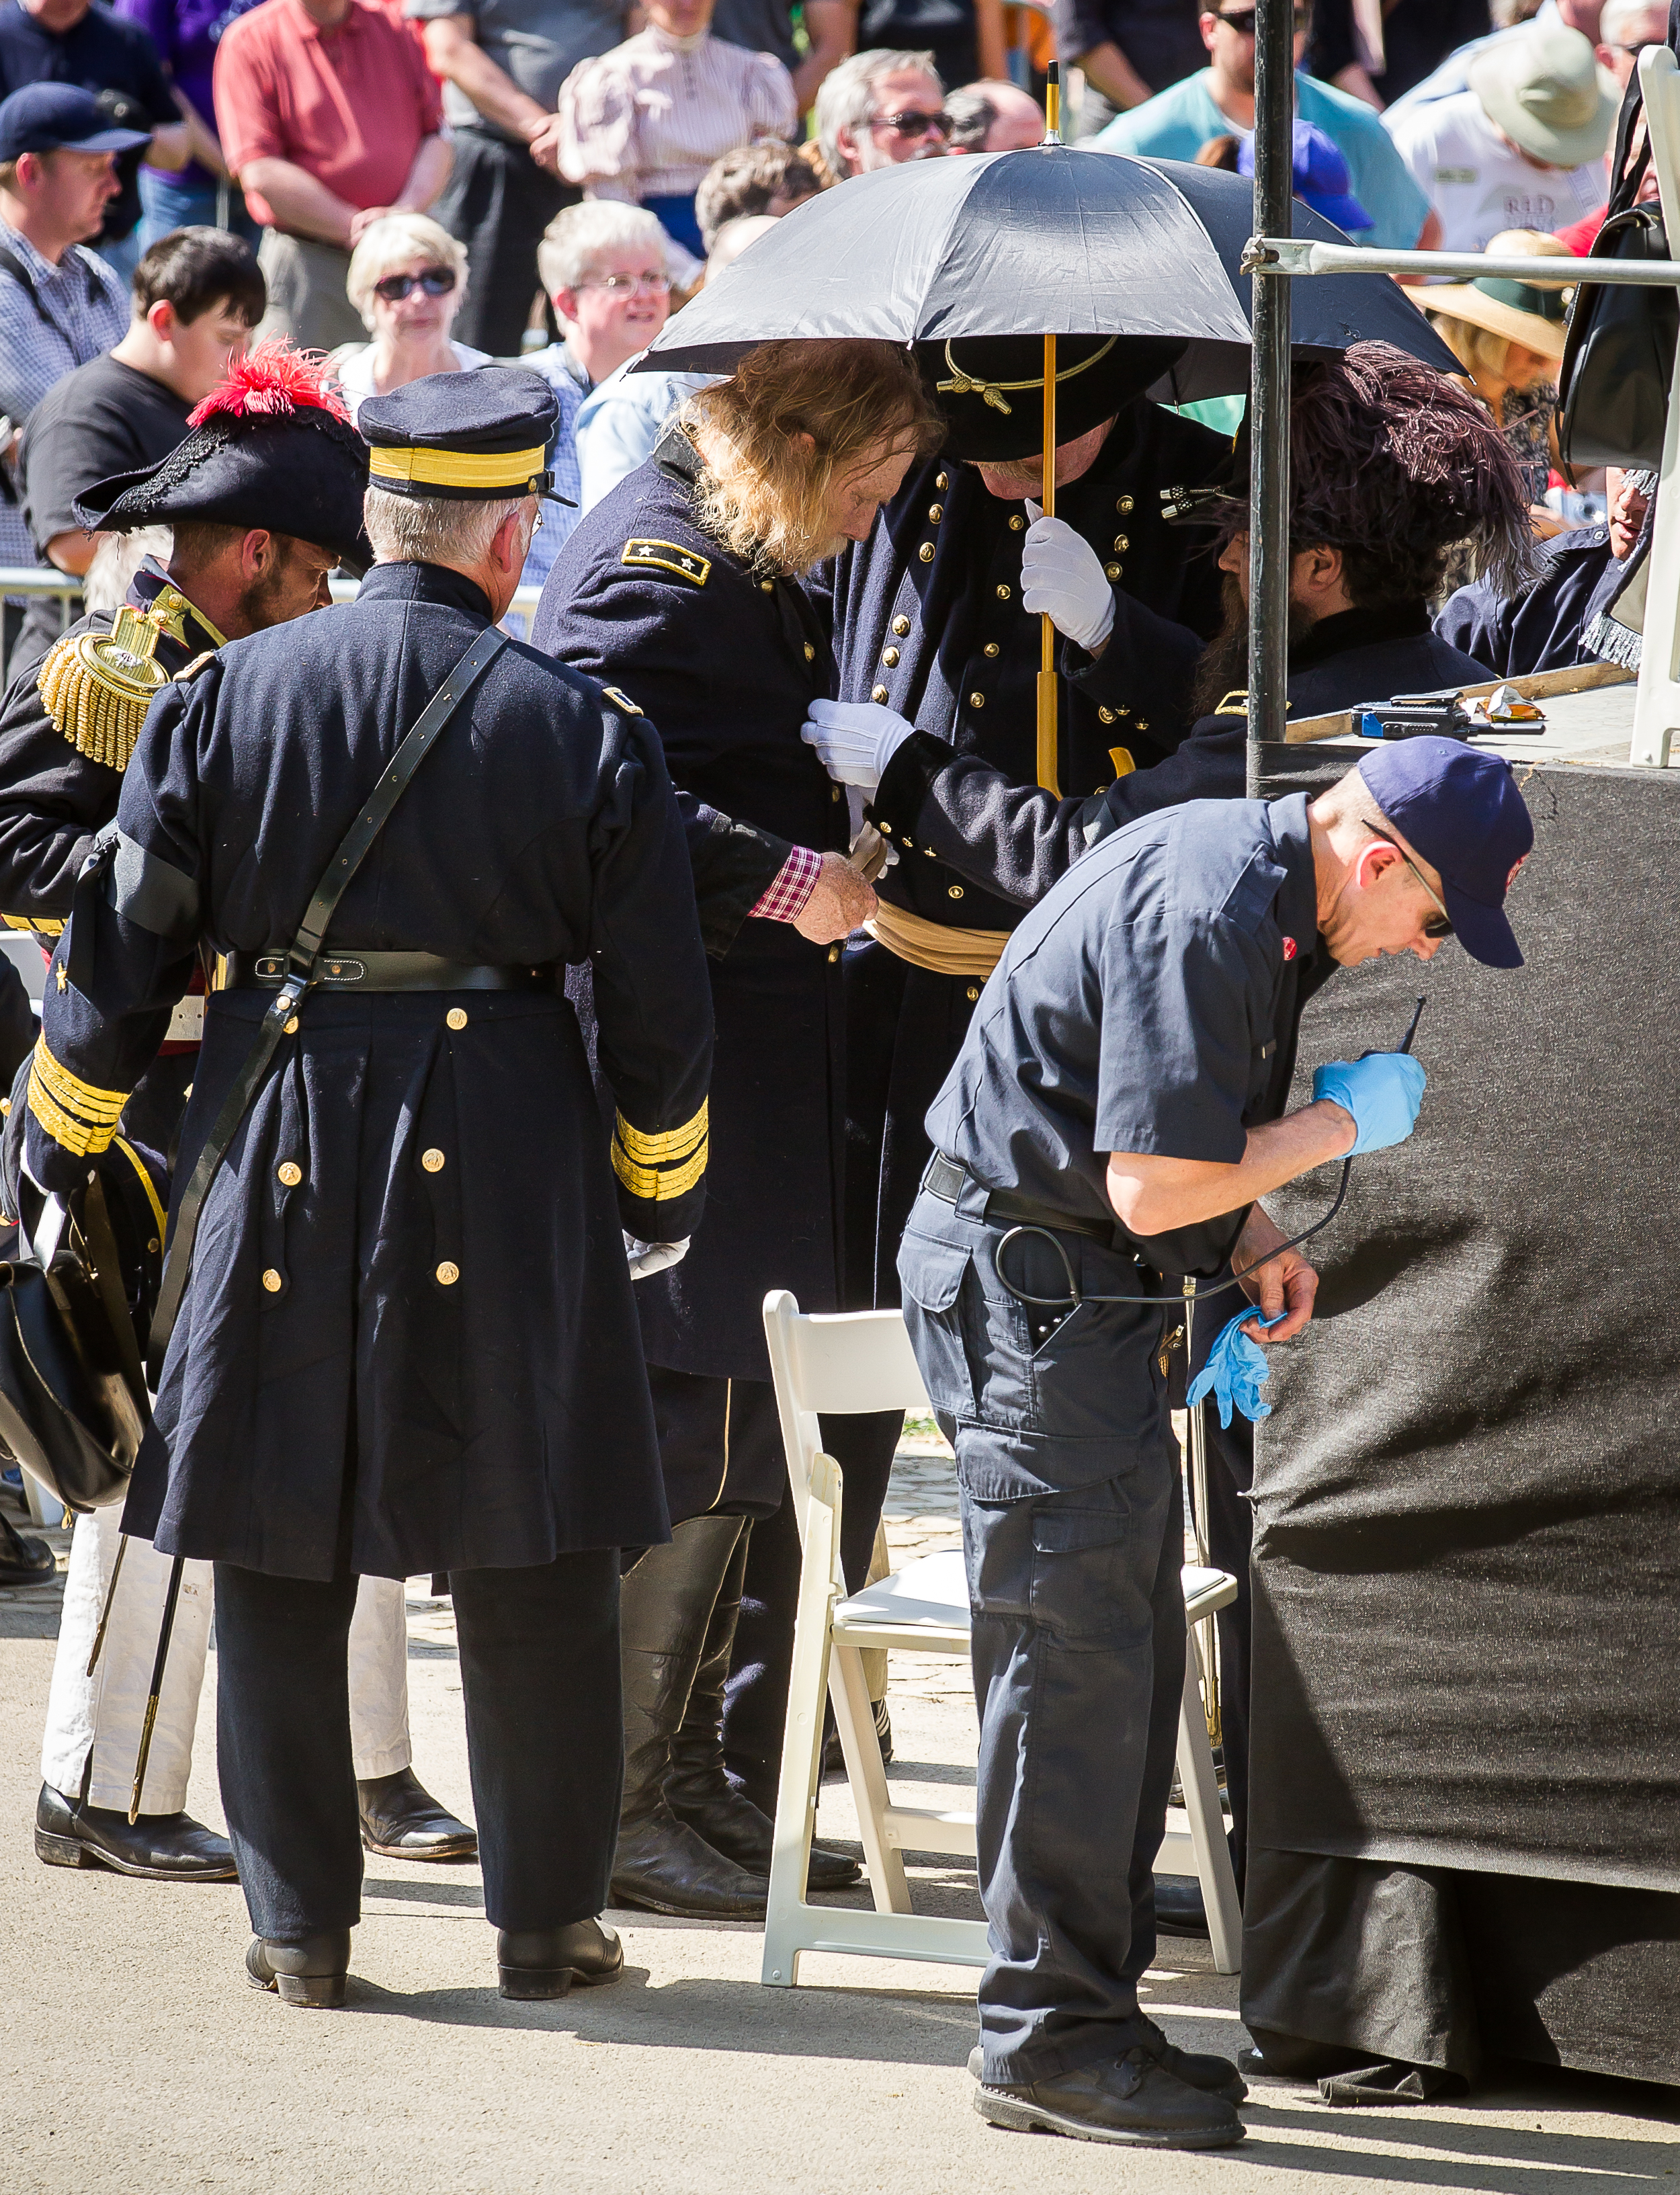 Medical staff come to the aid of a re-enactor overcome by the heat near the original receiving vault during the 2015 Lincoln Funeral Re-enactment, Sunday, May 3, 2015, in Springfield, Ill.  Justin L. Fowler/The State Journal-Register